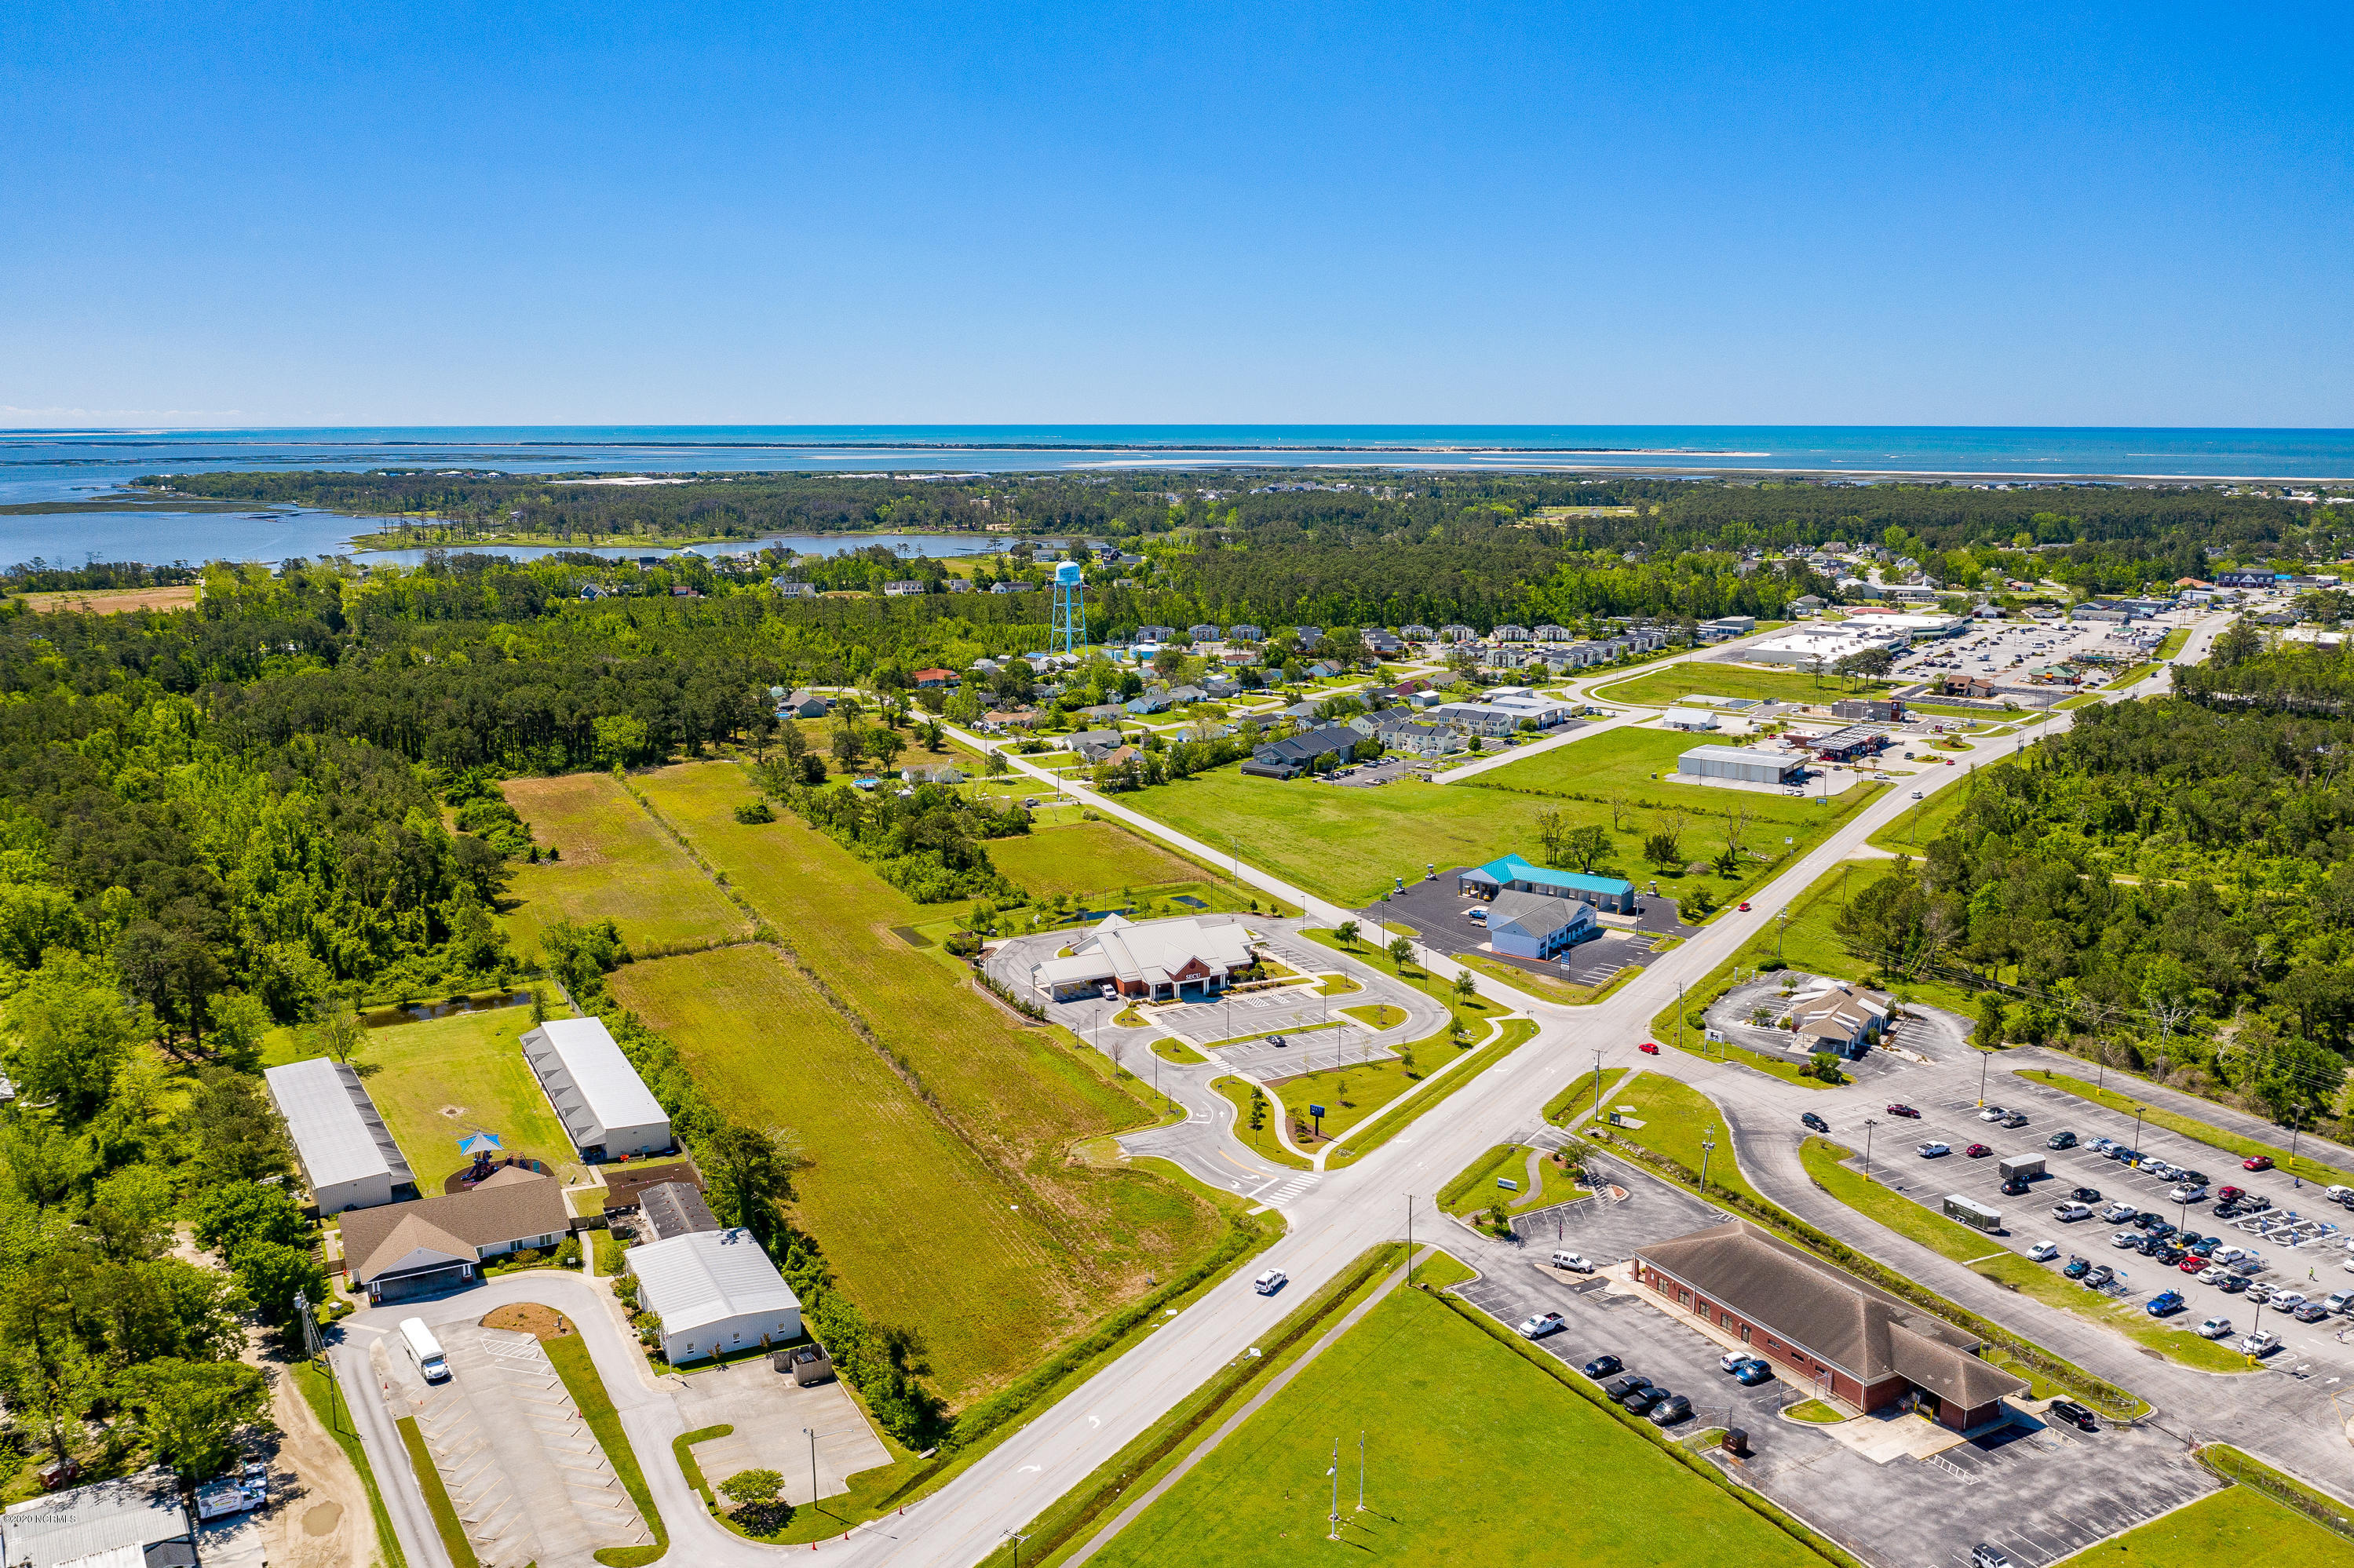 000 Live Oak St/143/149 Pinners Point, Beaufort, North Carolina 28516, ,For sale,Live Oak St/143/149 Pinners,100207166